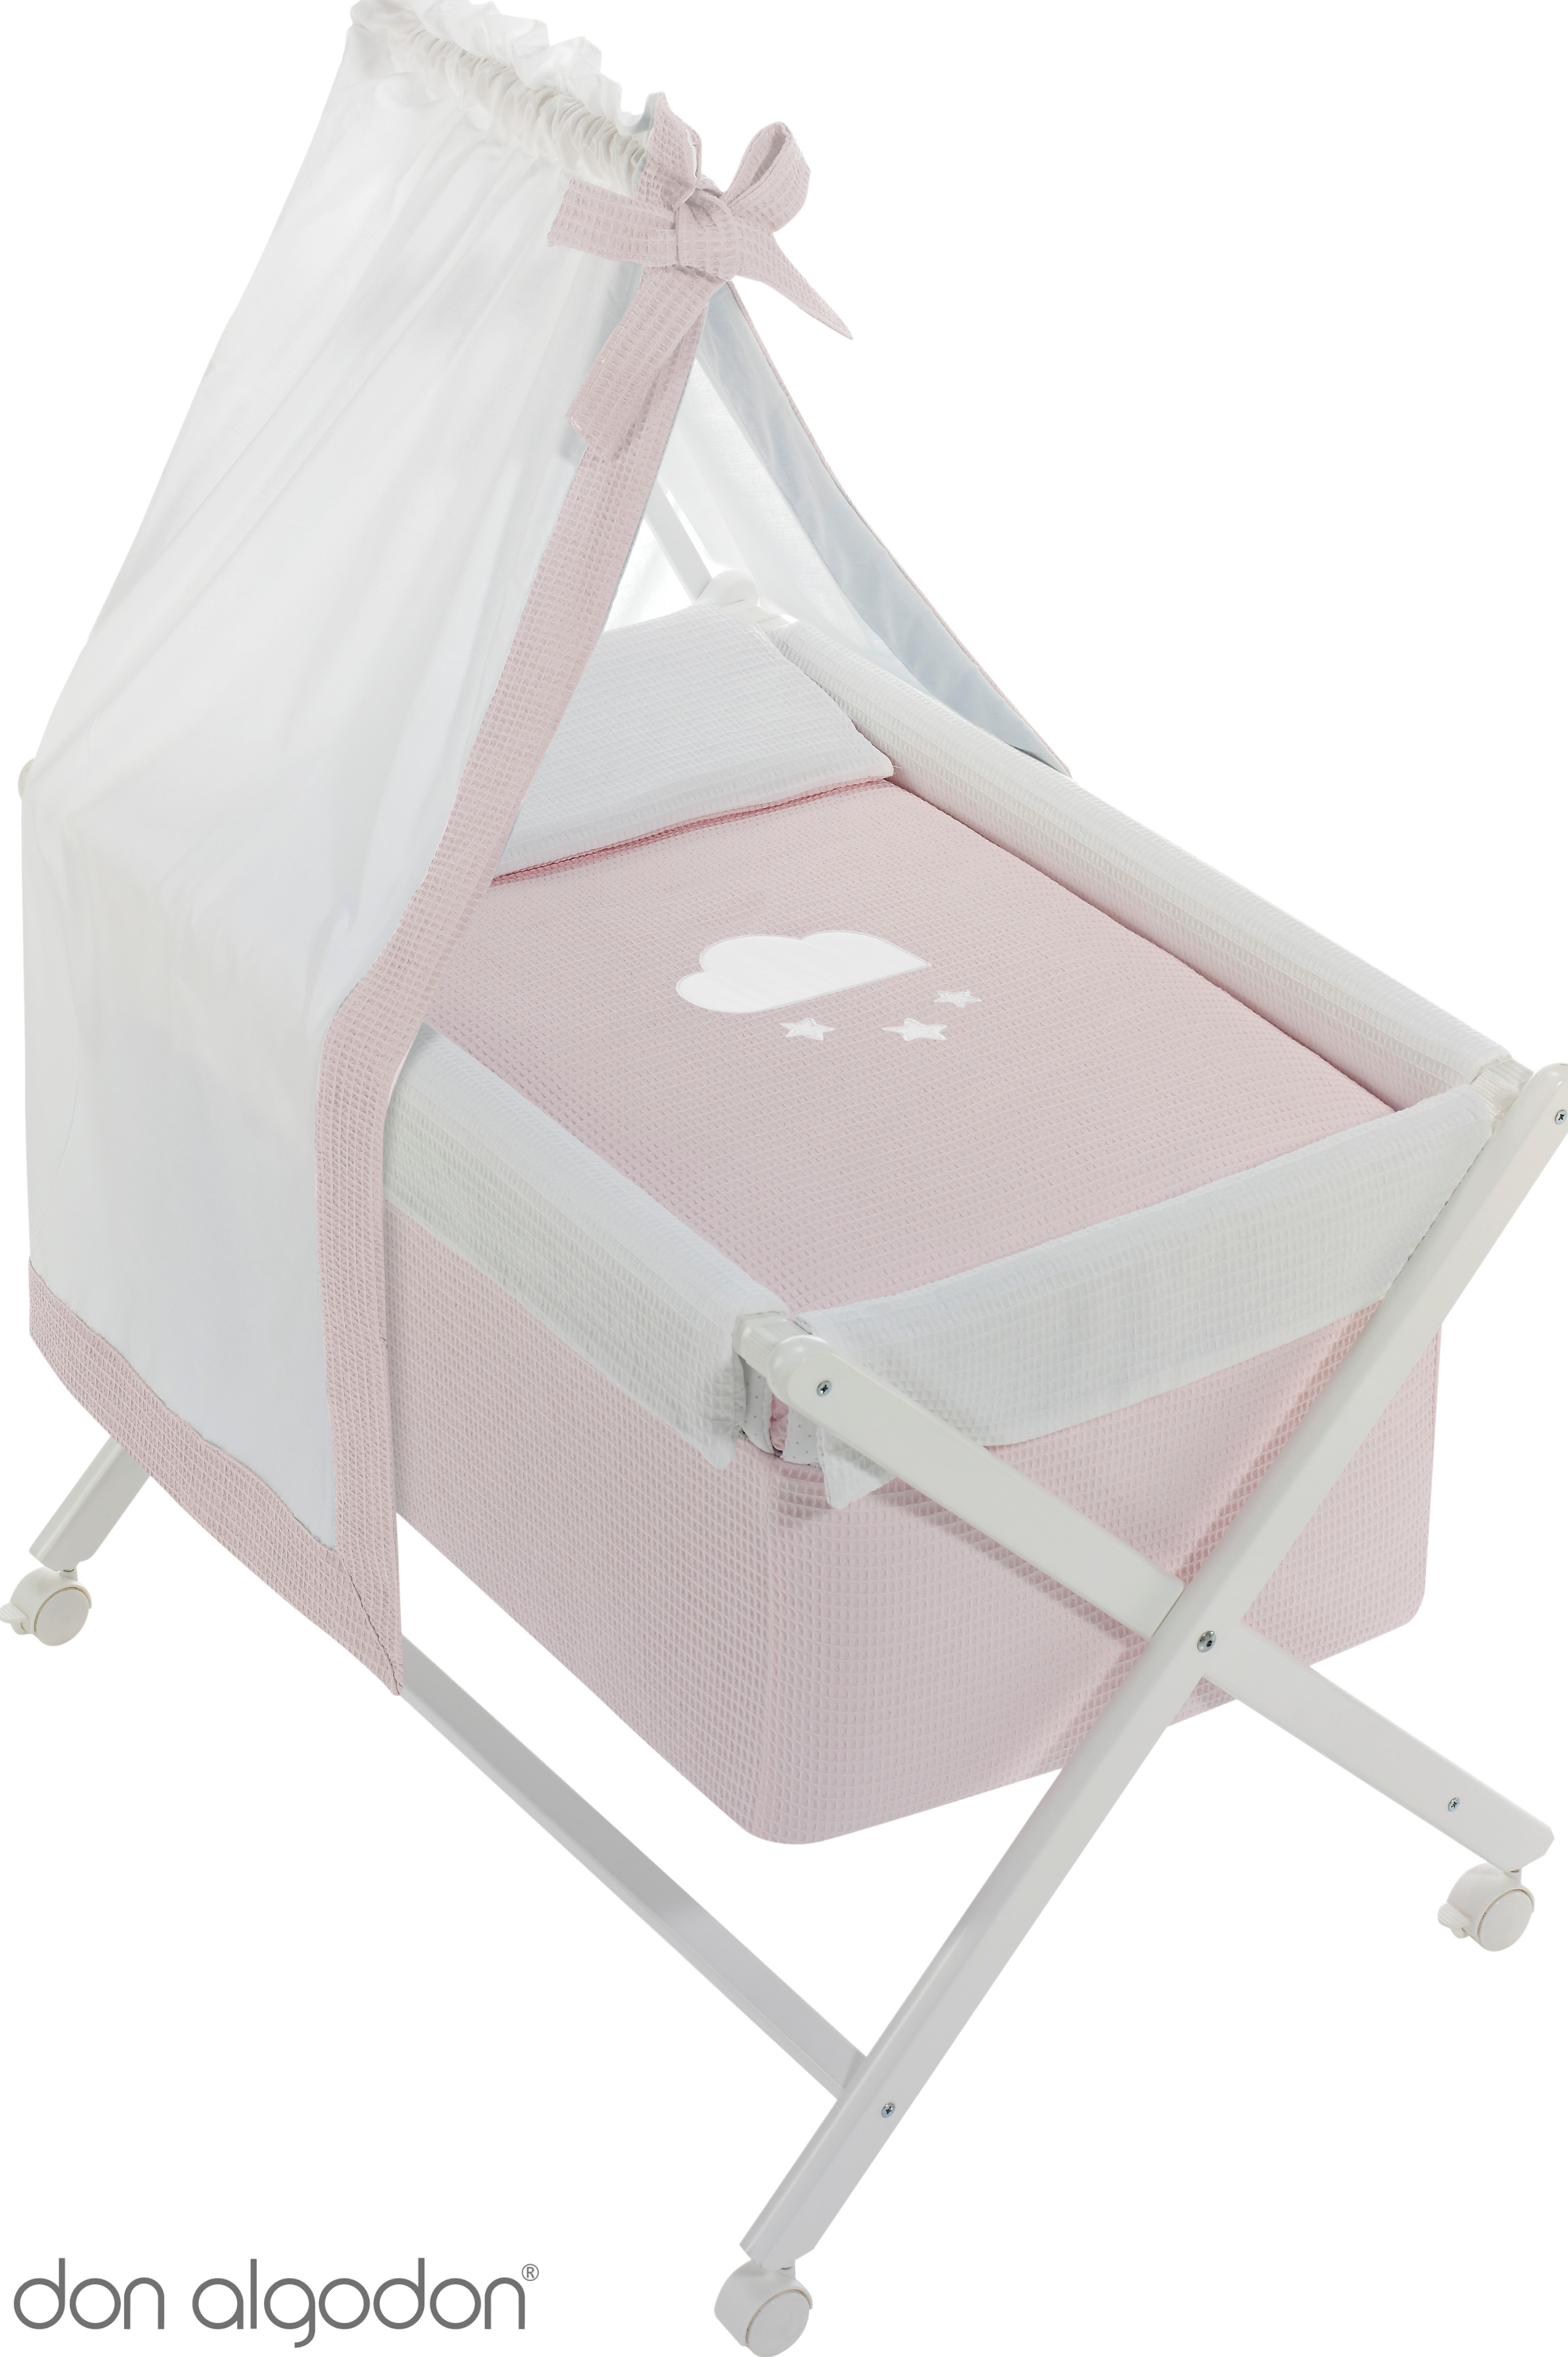 manyo port/átil Baby Nippel Box Boy Girl Infant Chupete Cradle Caso soporte Chupete Box